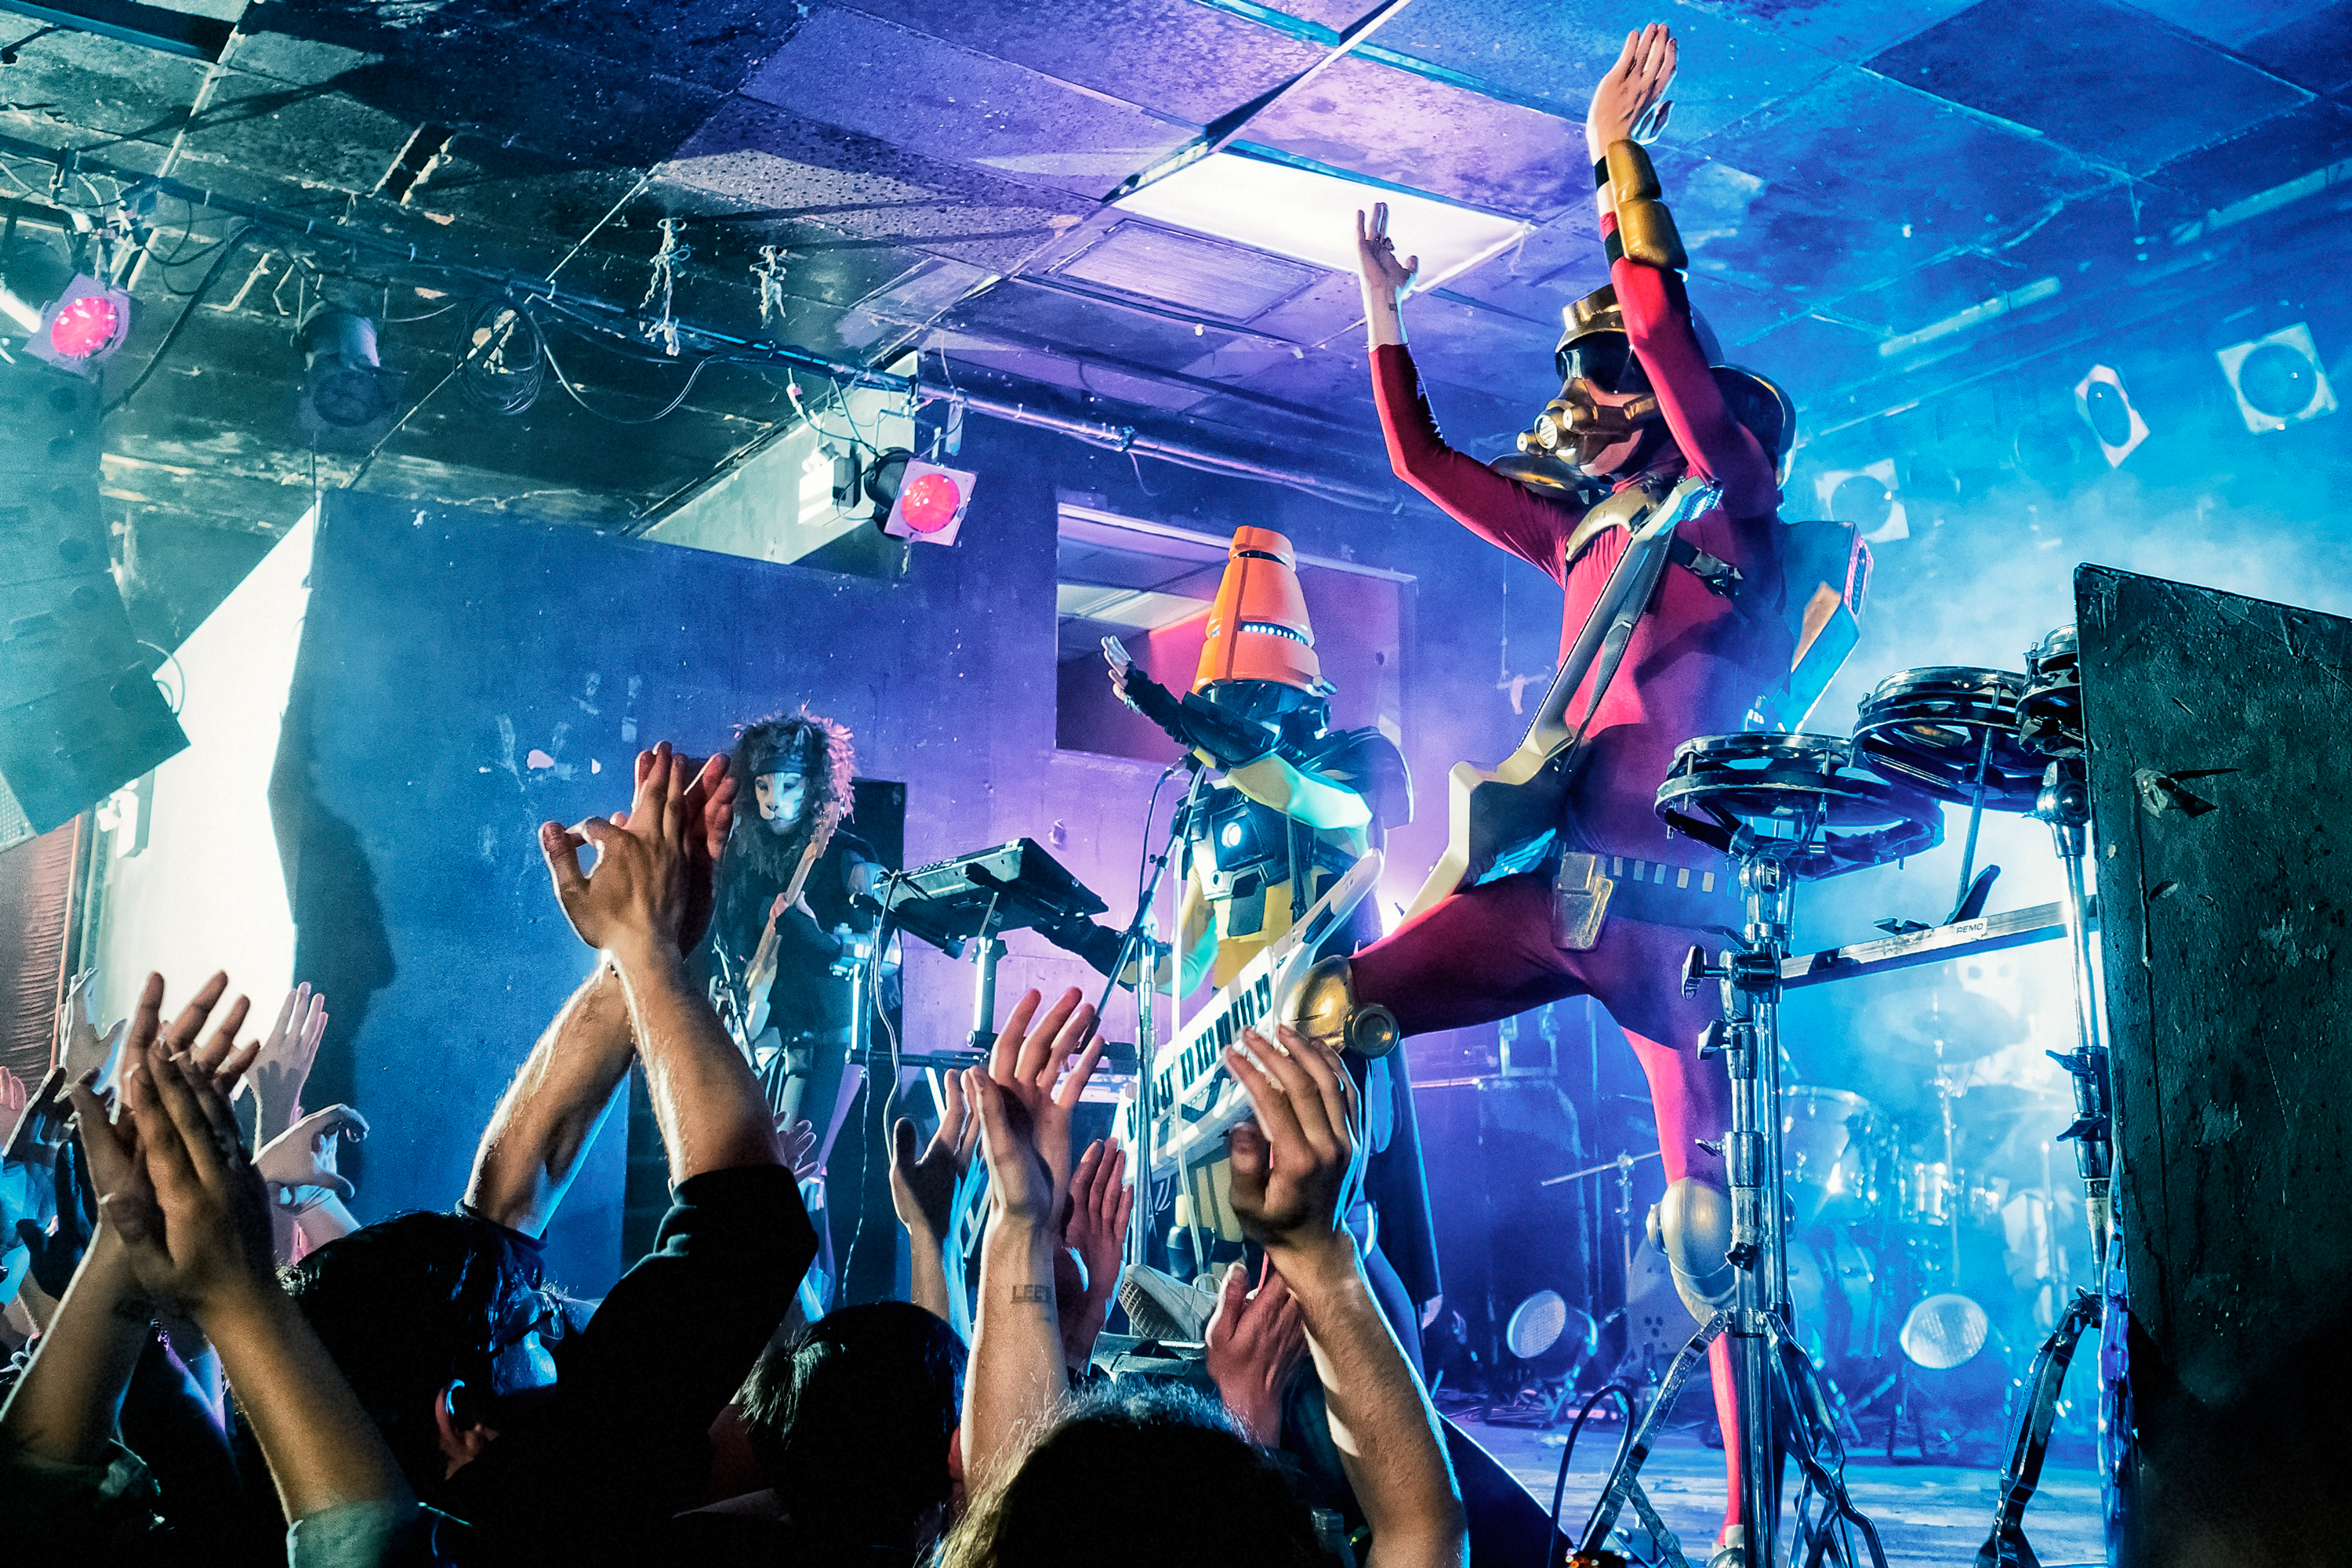 TWRP rocking out